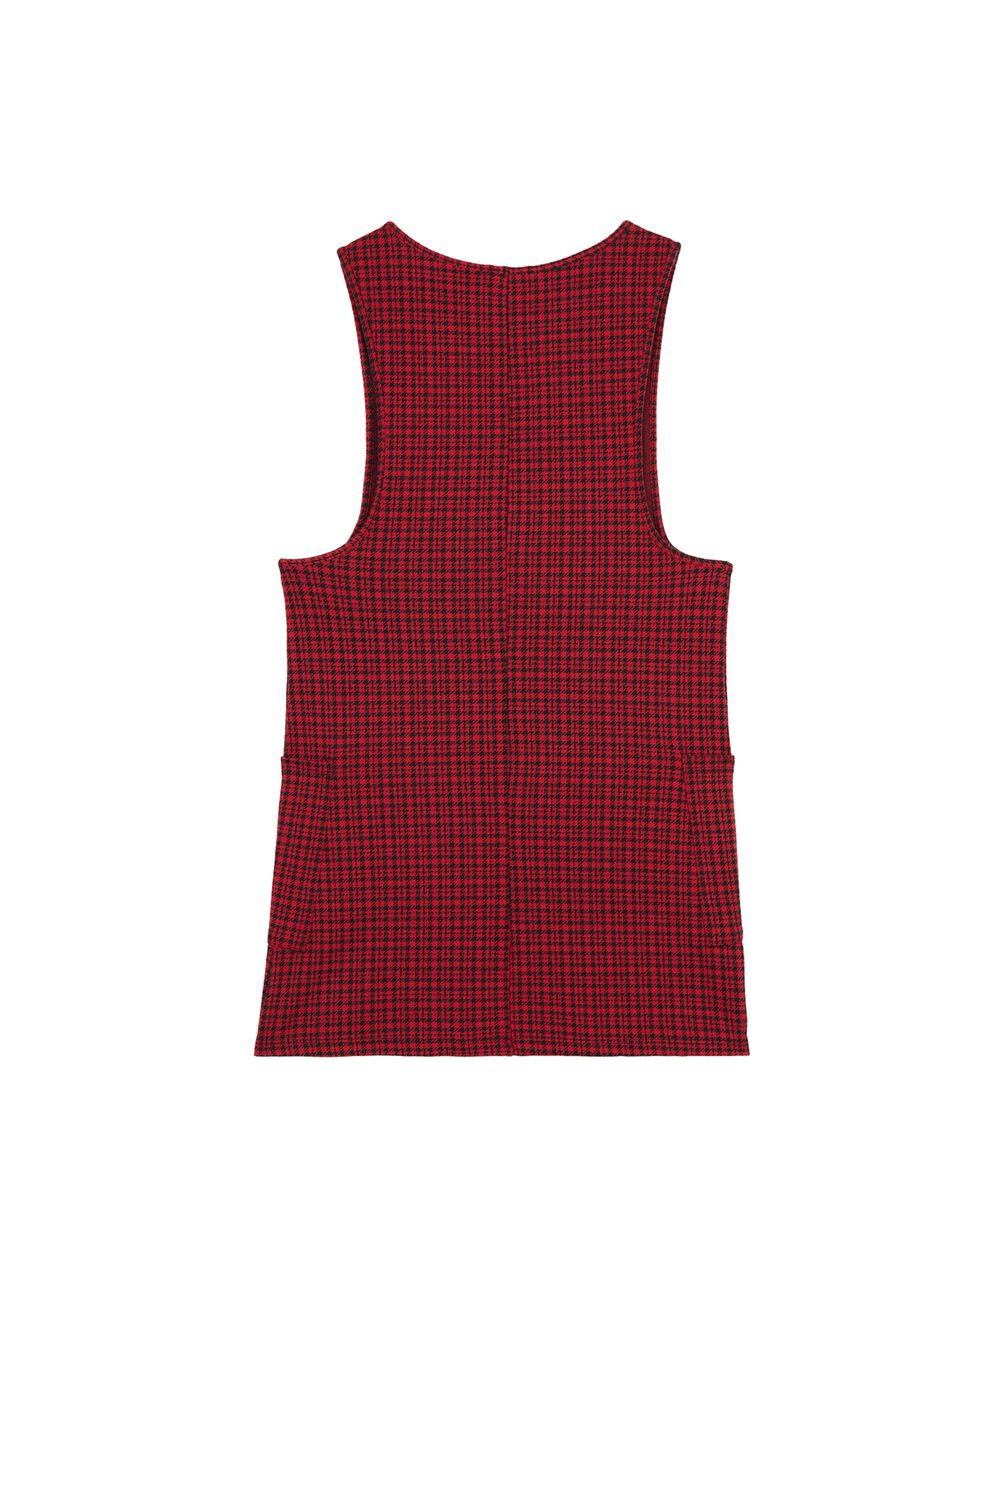 Buttoned Milano-Stitch Dungaree Dress